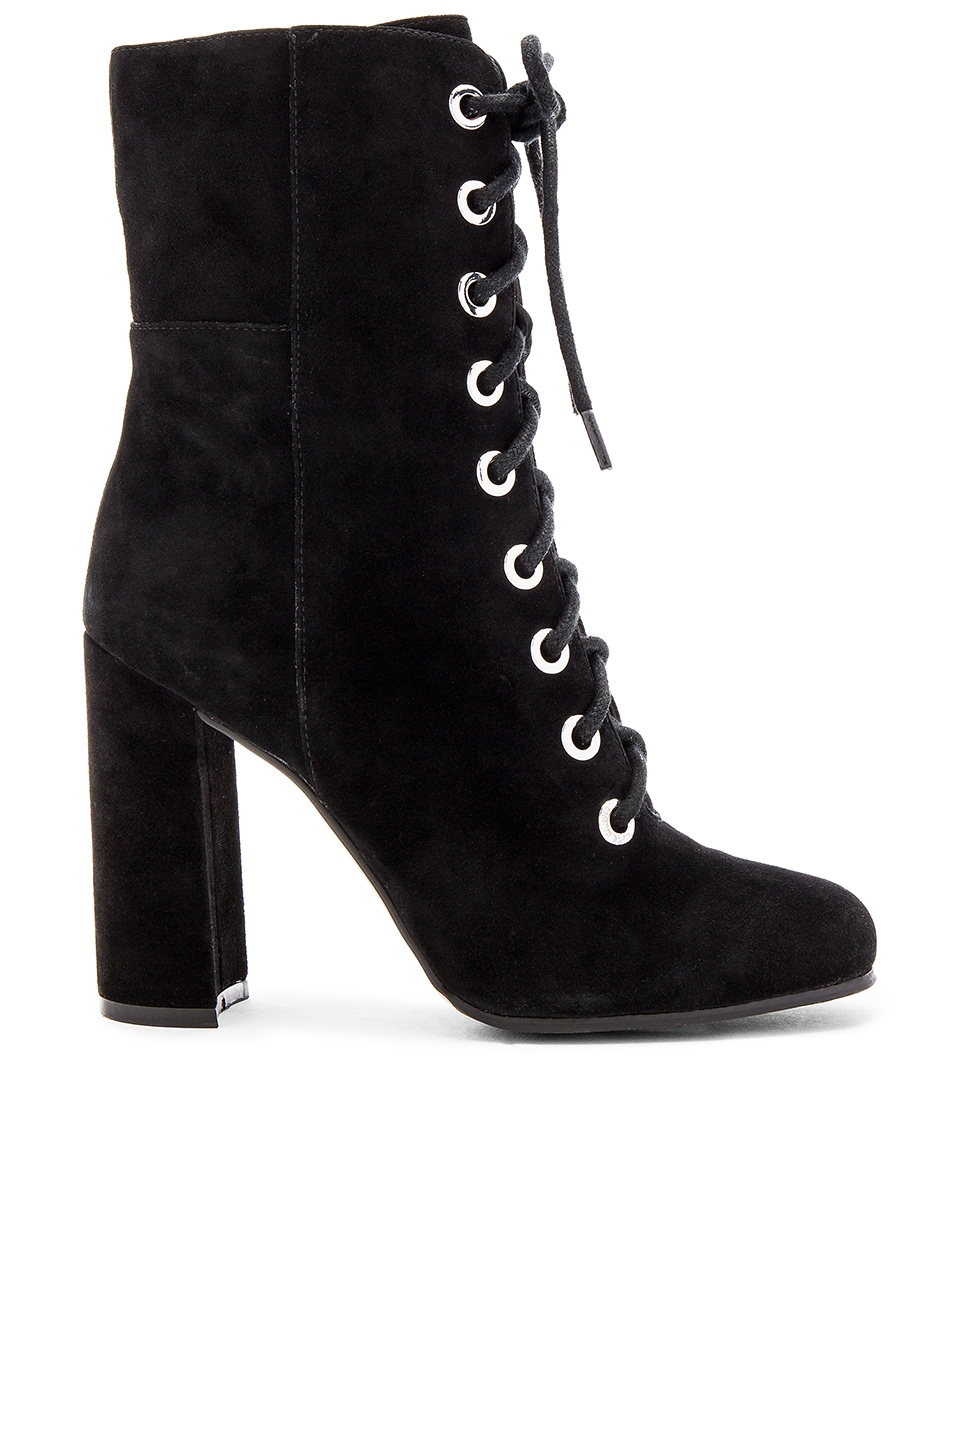 Vince Camuto Teisha Booties in Black